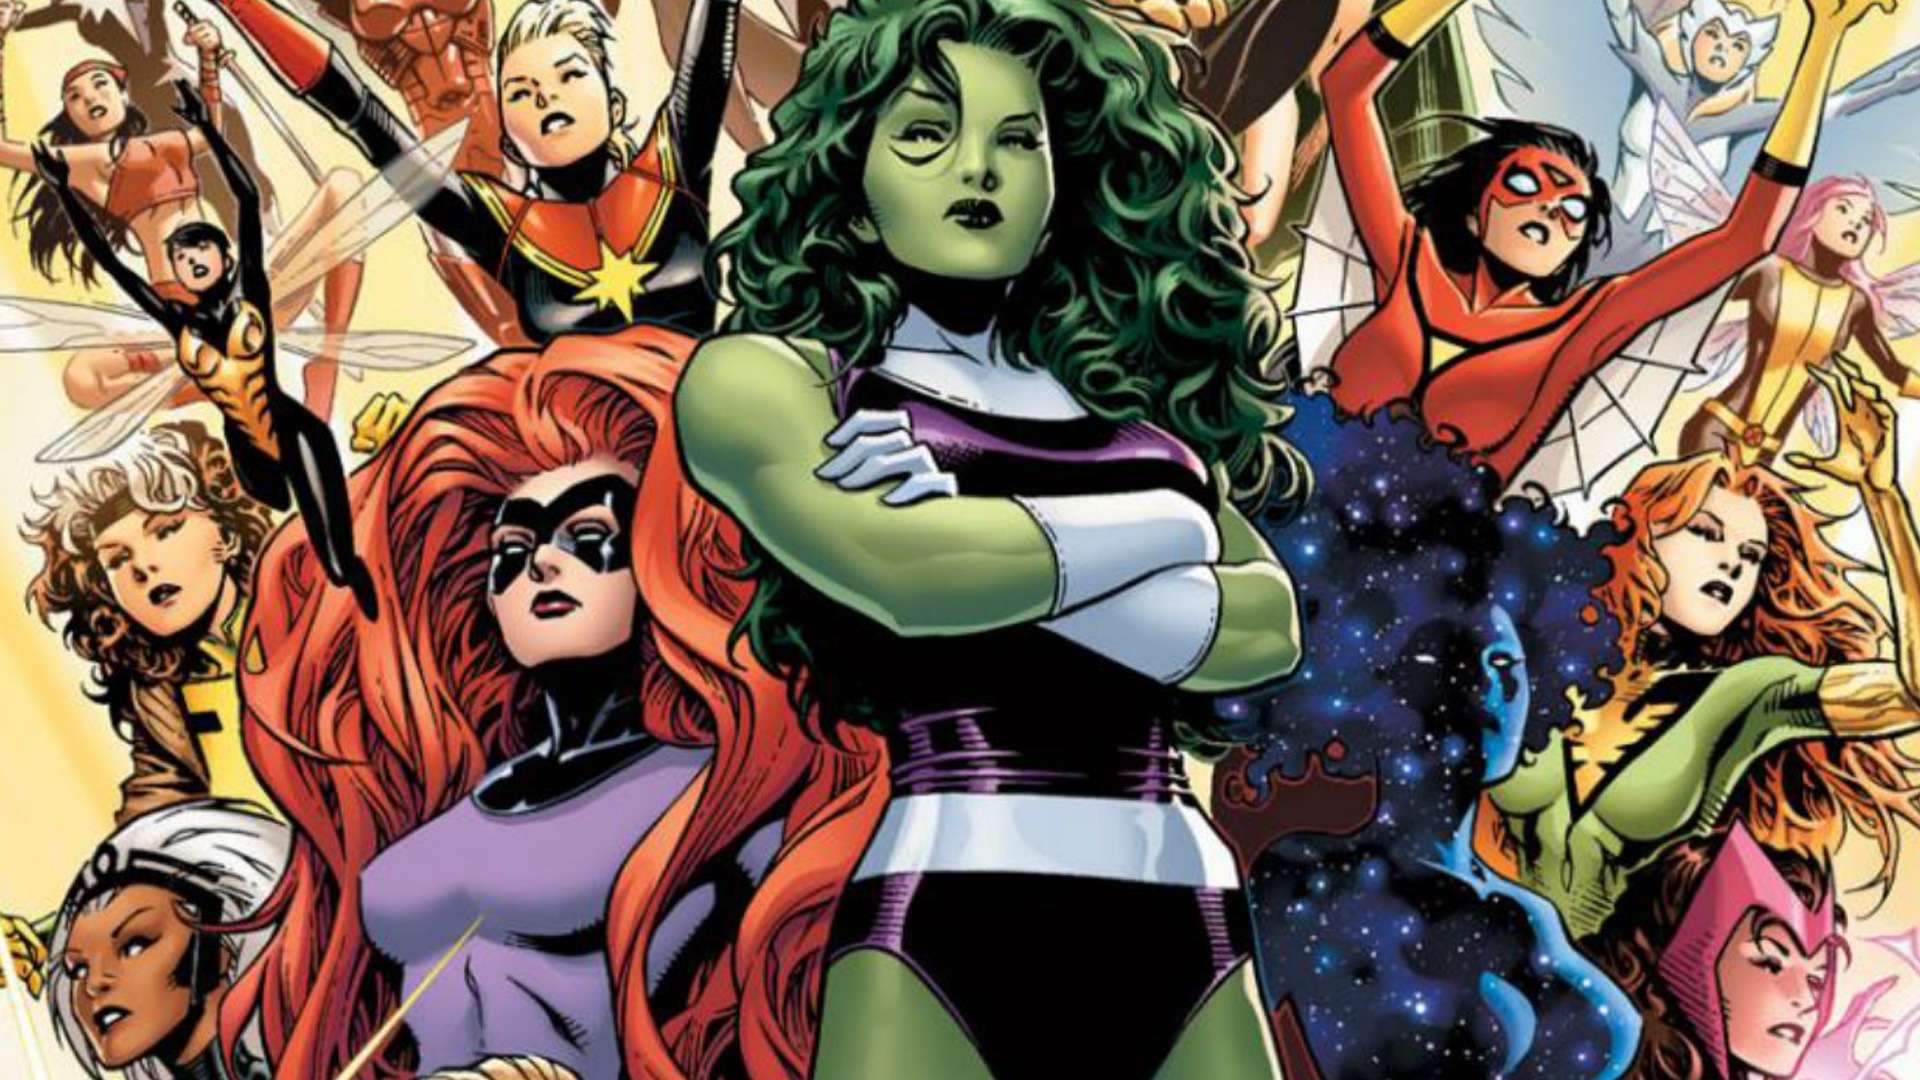 abc-is-looking-to-develop-a-new-marvel-series-that-will-feature-a-mostly-brand-new-female-superhero-social.jpg